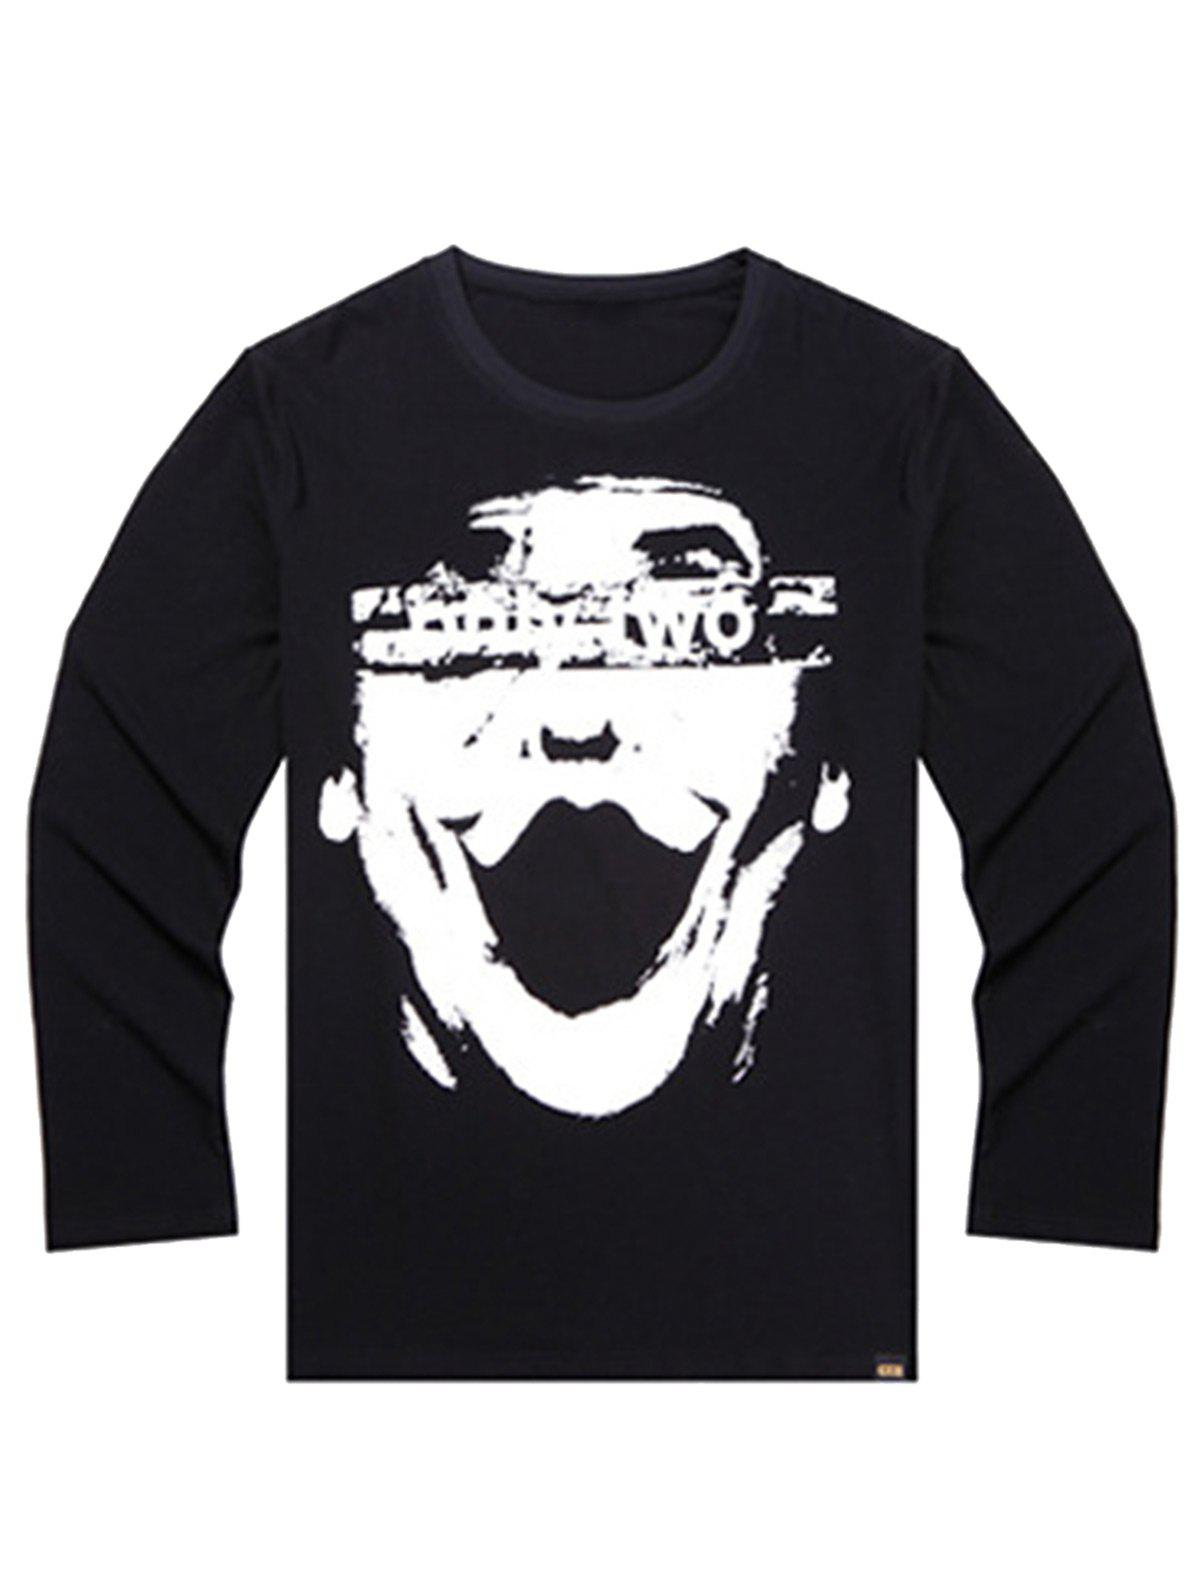 Affordable Printed Plus Size Long Sleeve T-shirt